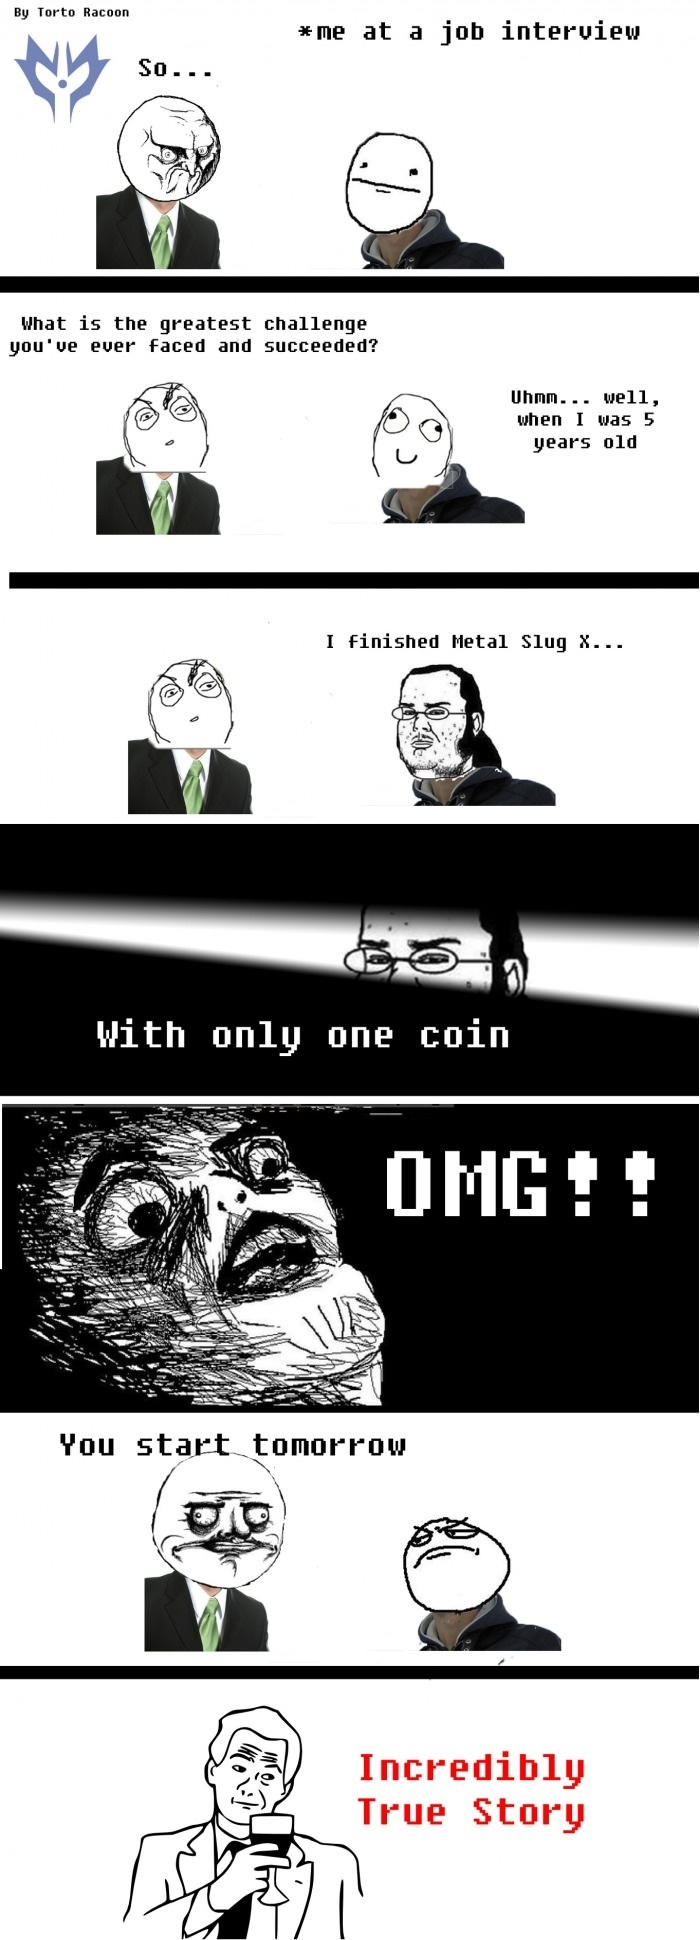 The one coin